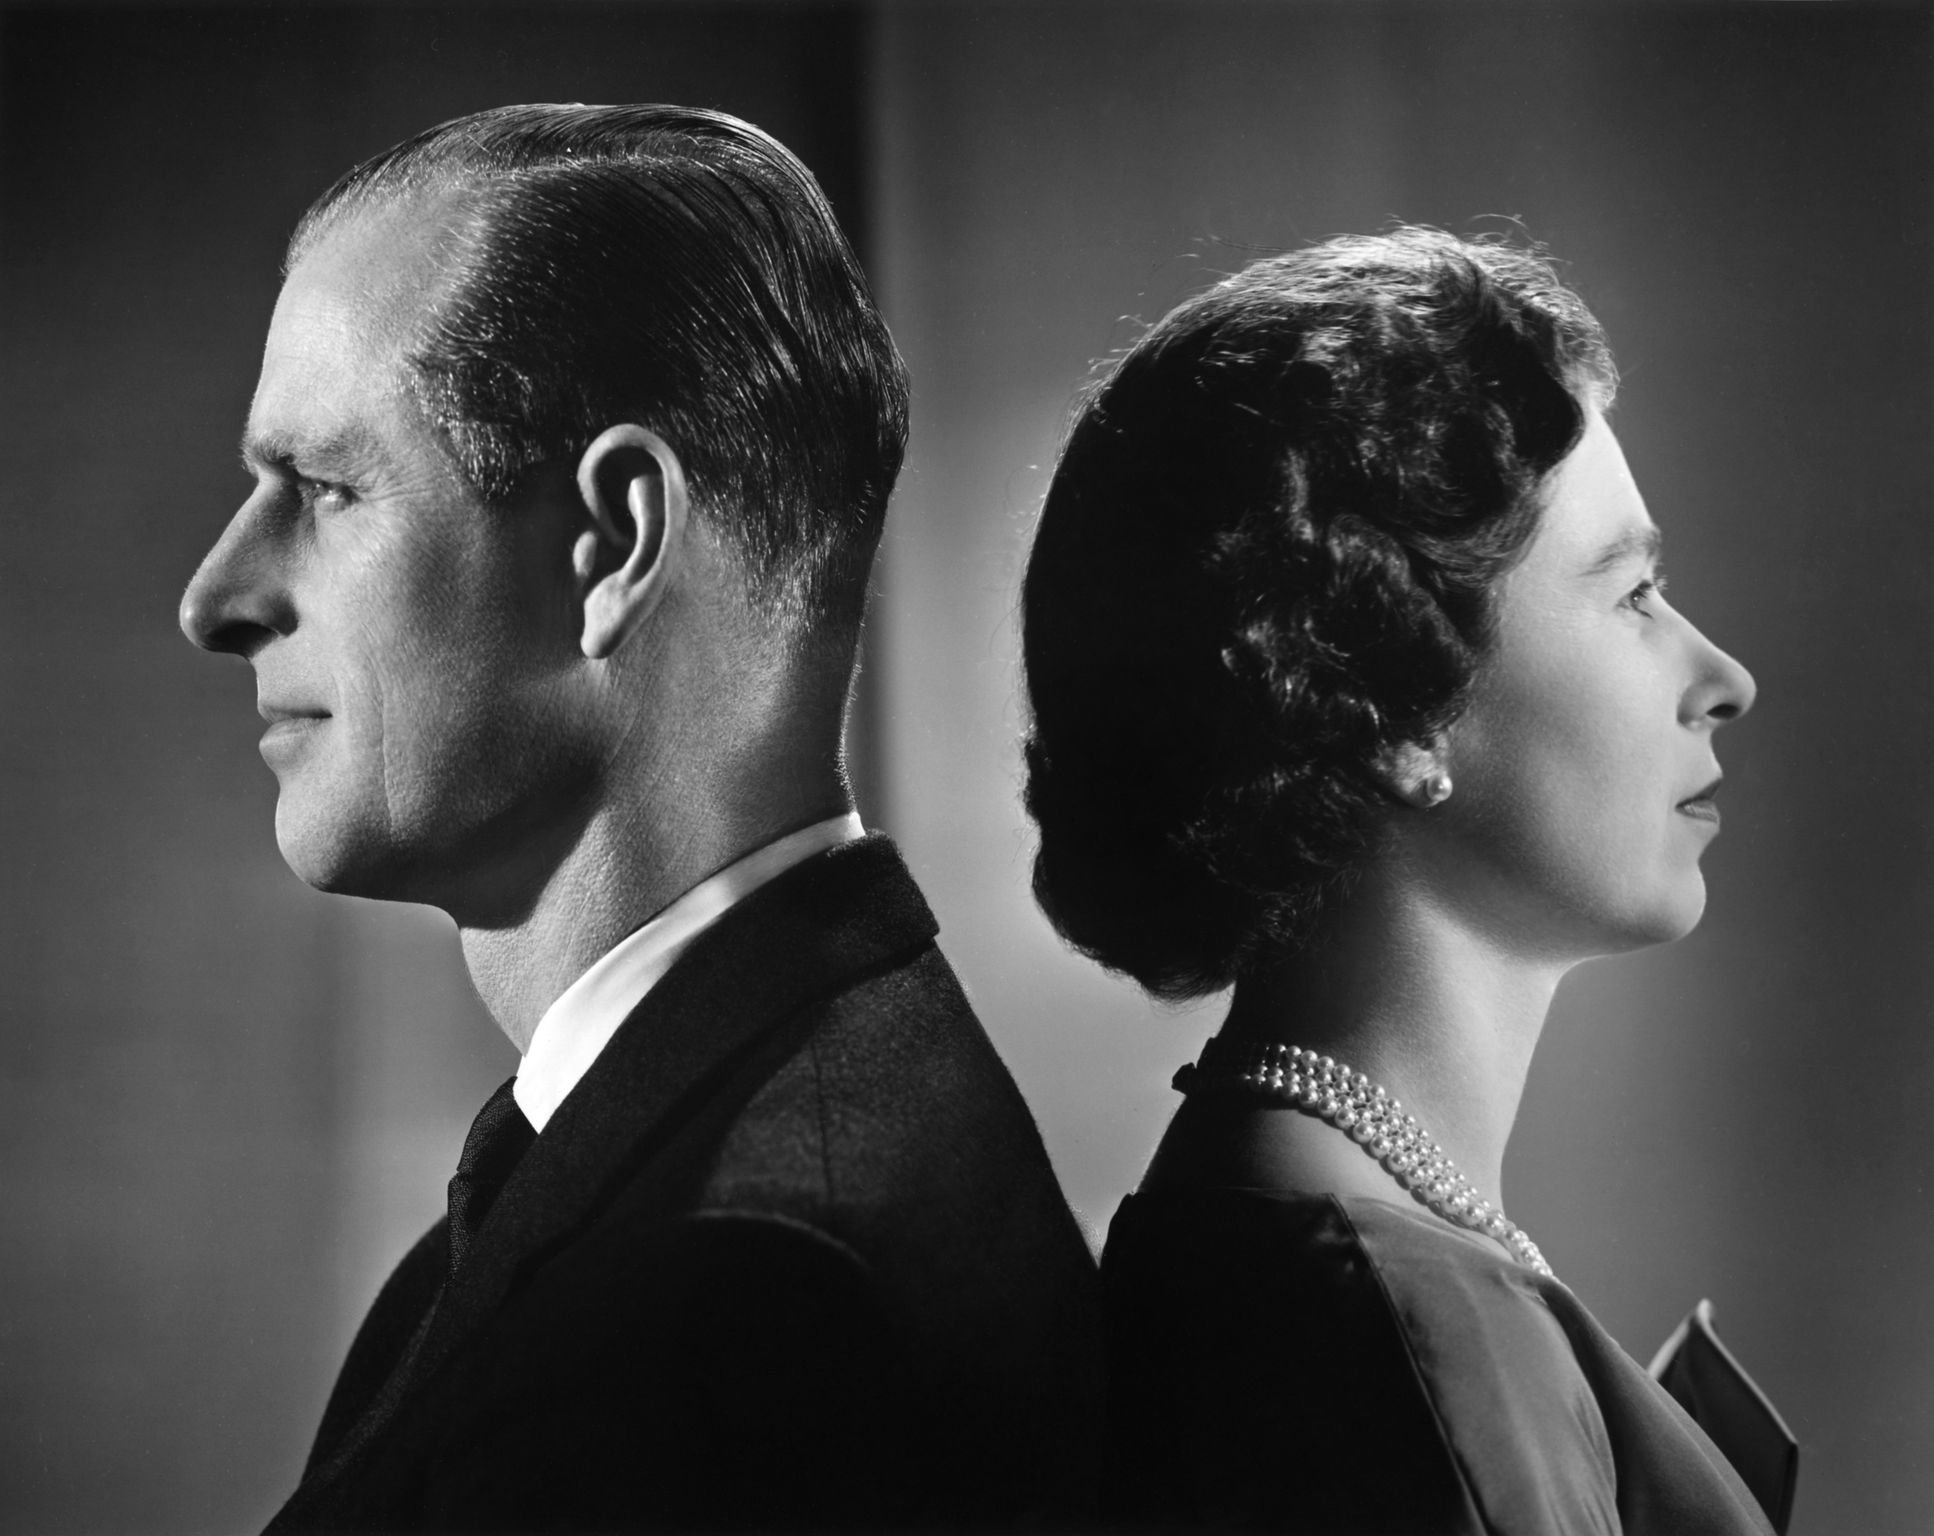 Queen Elizabeth II and Prince Philip pose for a portrait at home in Buckingham Palace in 1958 in London, England   Source: Getty Images